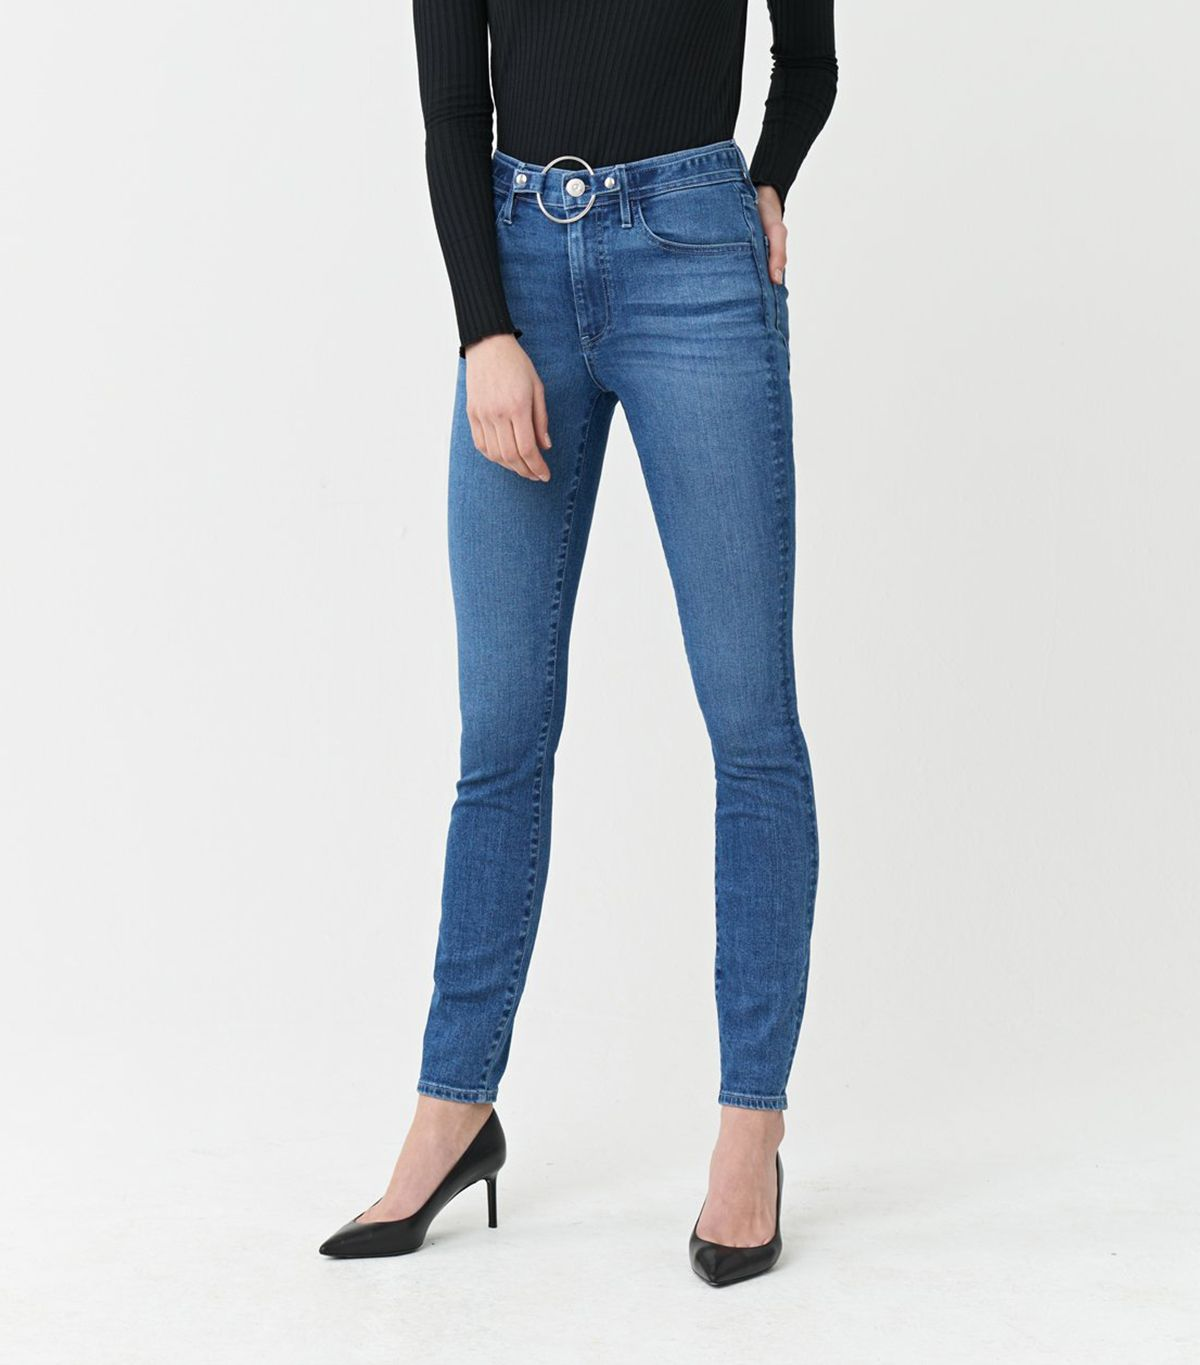 5 Issues Everyone Has With Skinny Jeans (and How to Fix Them) 2